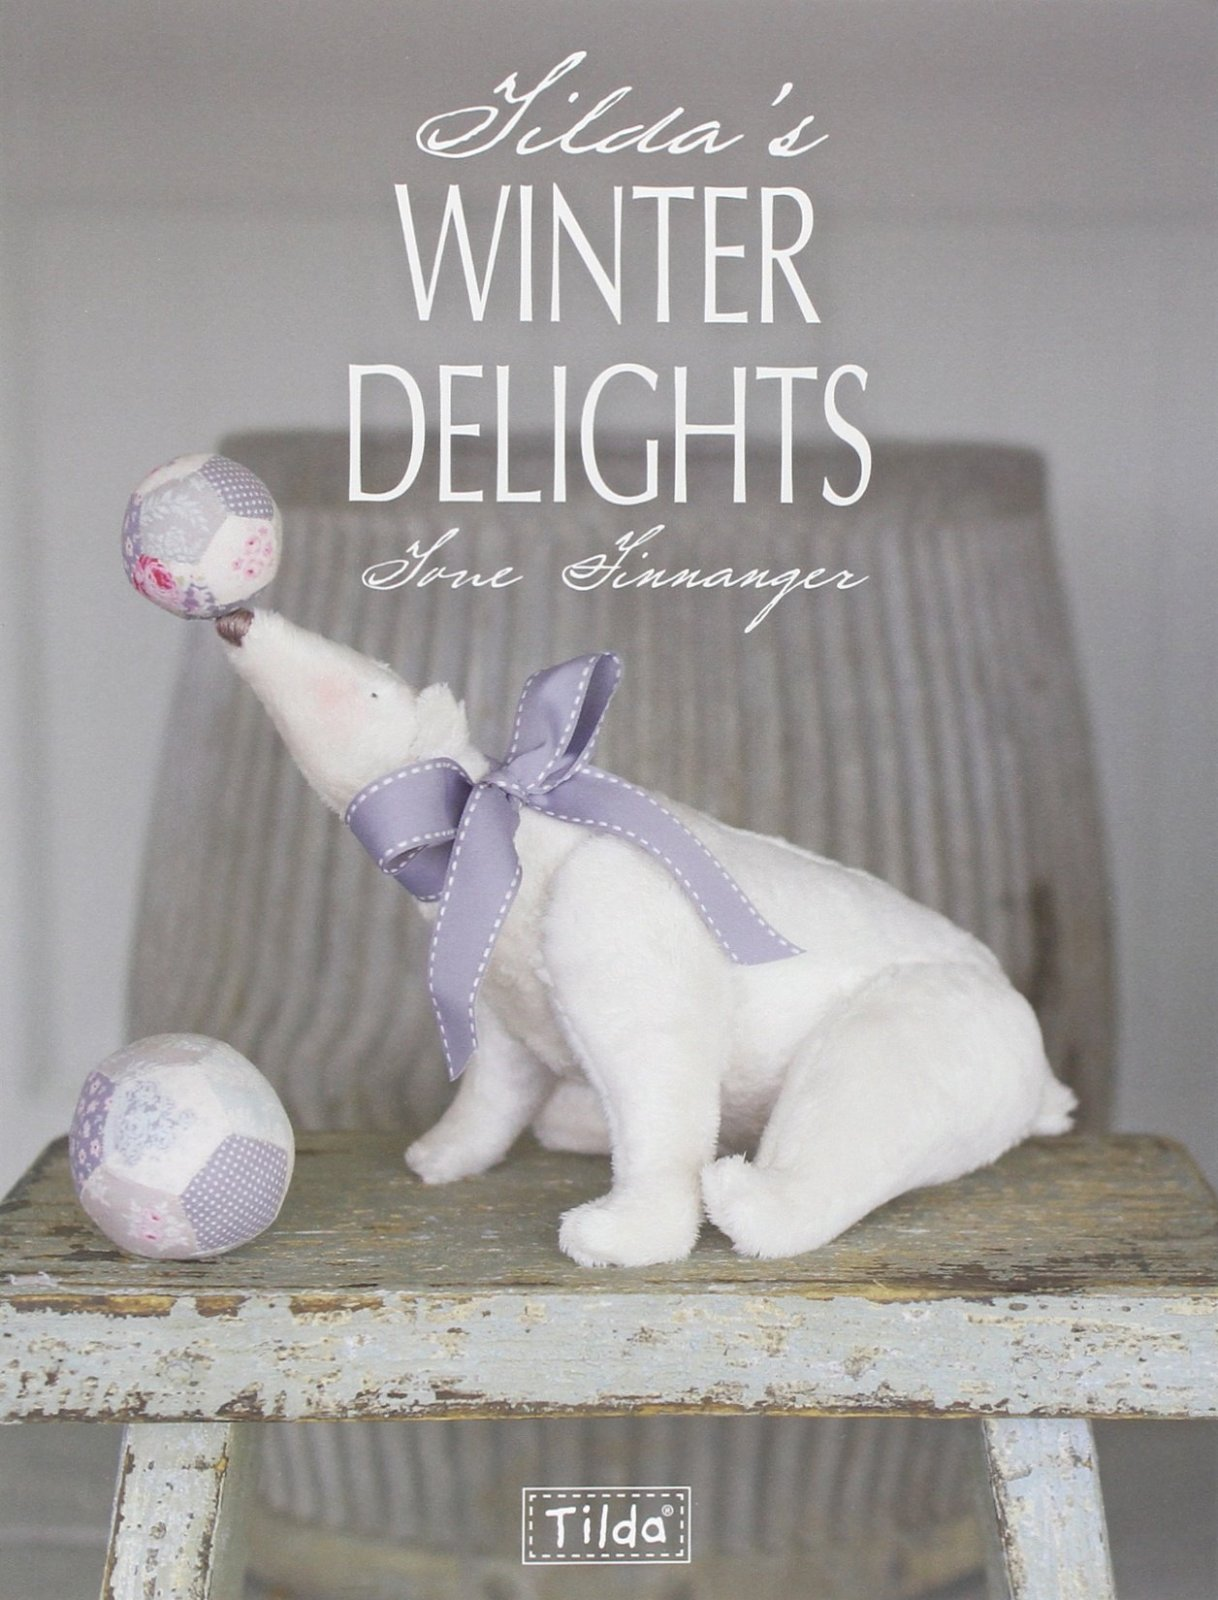 Tilda's Winter Delight's